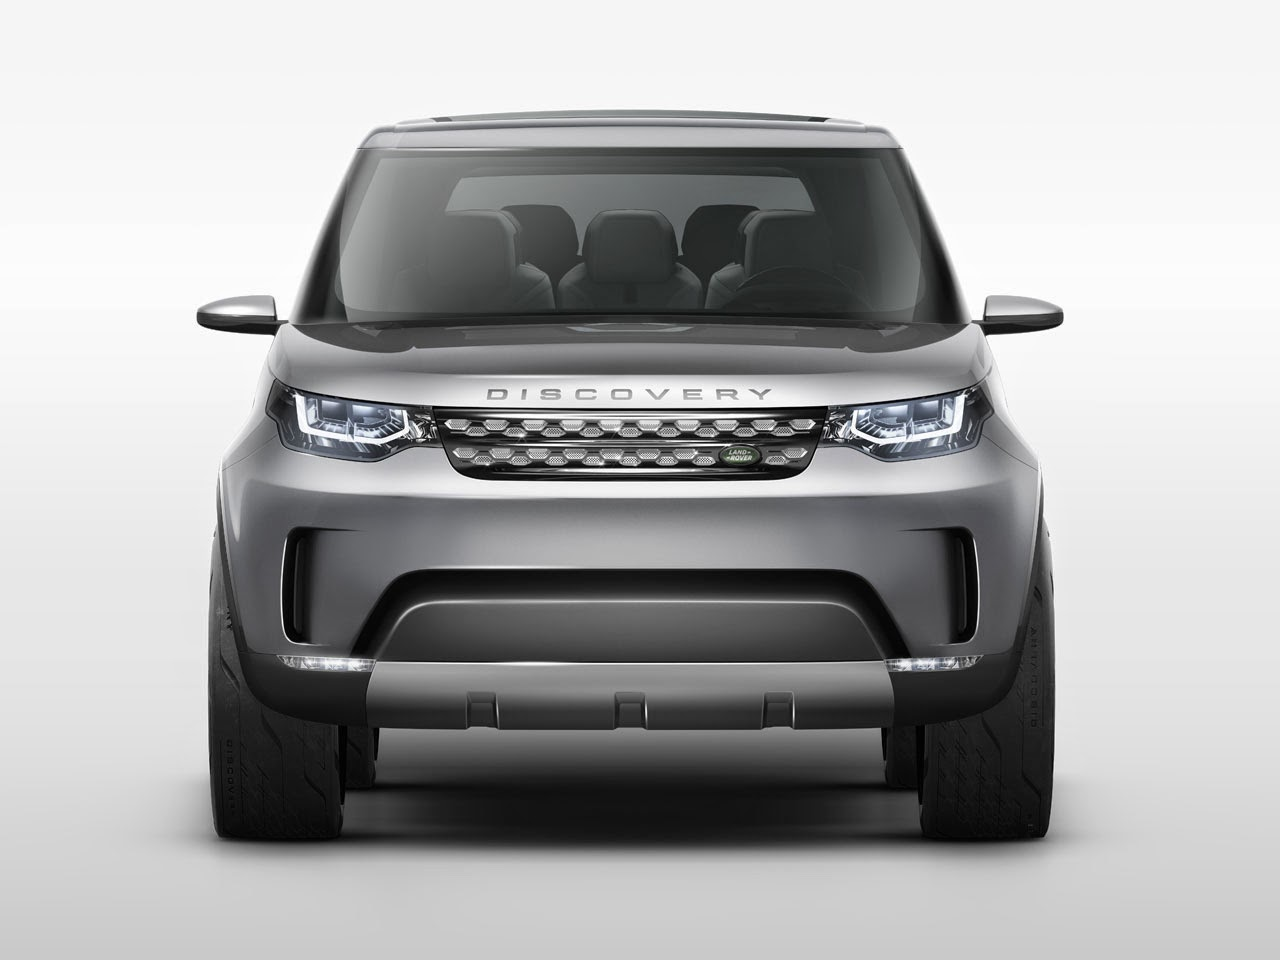 Land Rover Discovery Vision Concept front